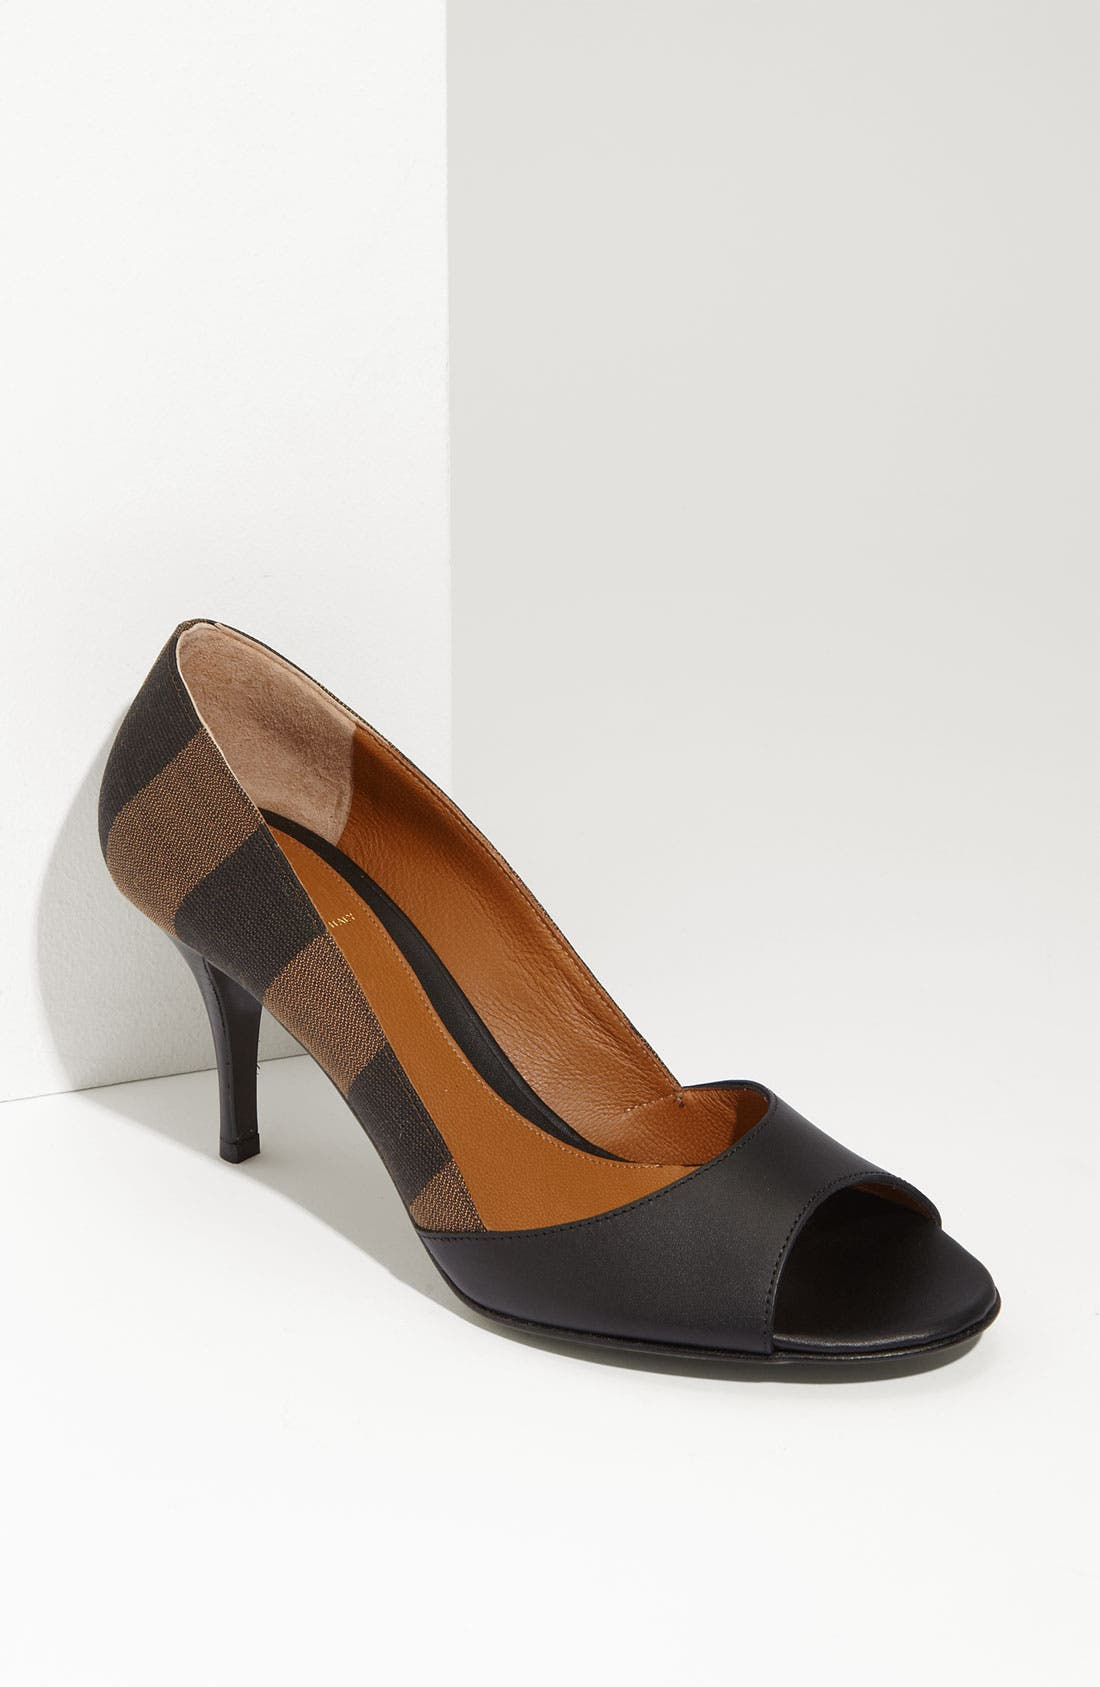 Main Image - Fendi 'Pequin' Pump